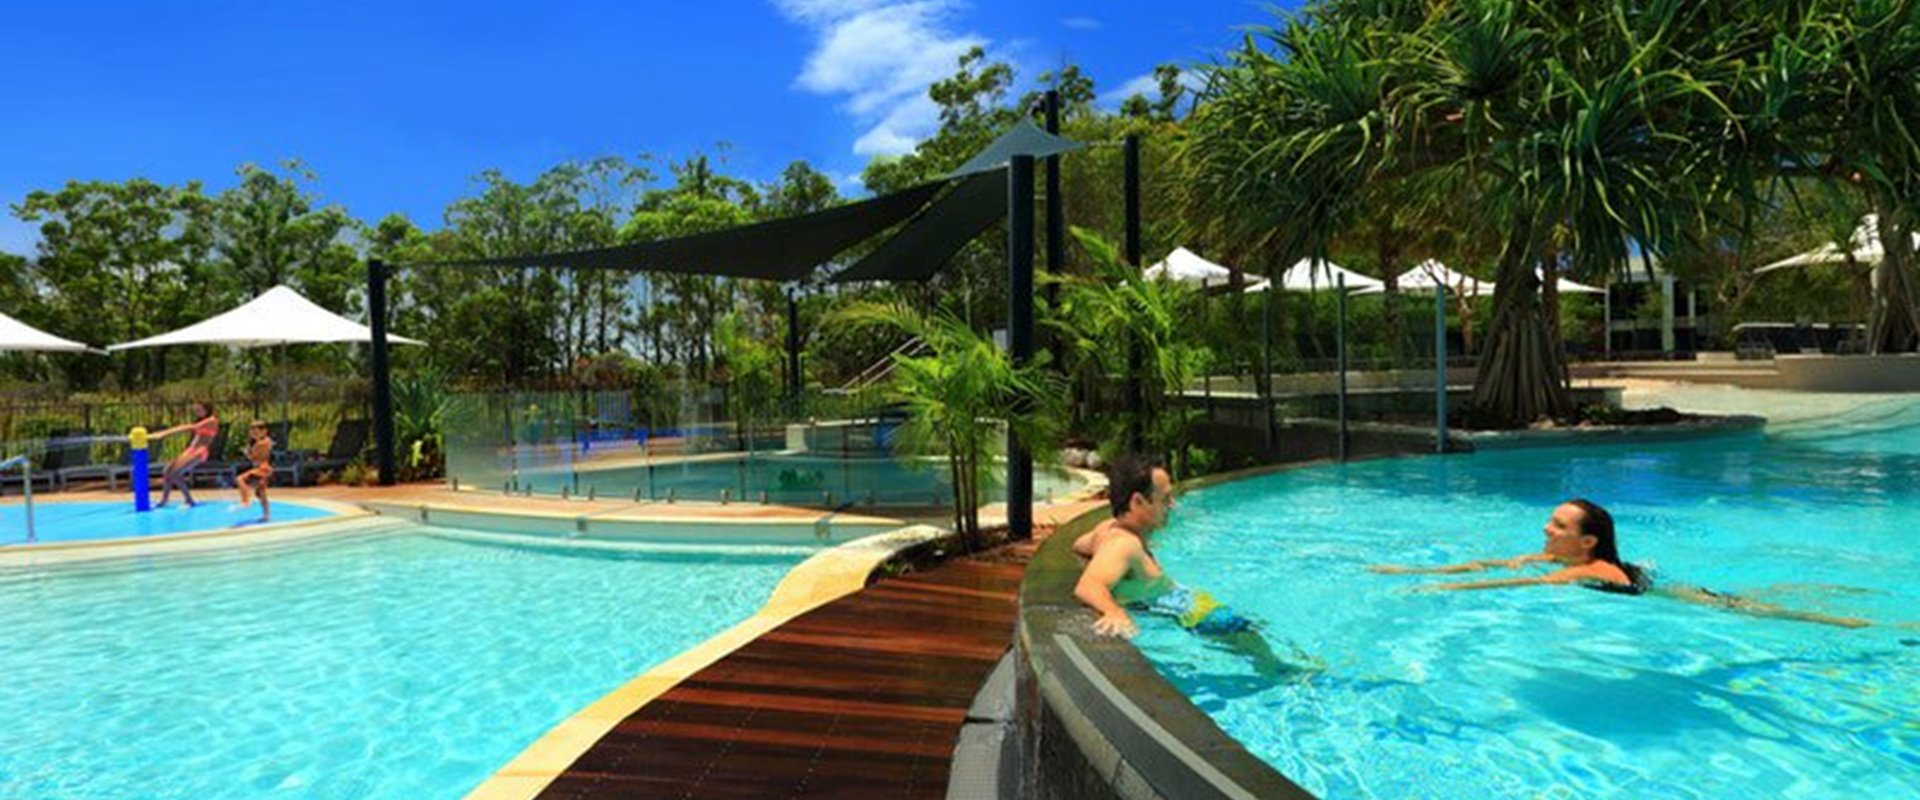 RACV Noosa  | Conference Venues Sunshine Coast | Conference Venues Queensland